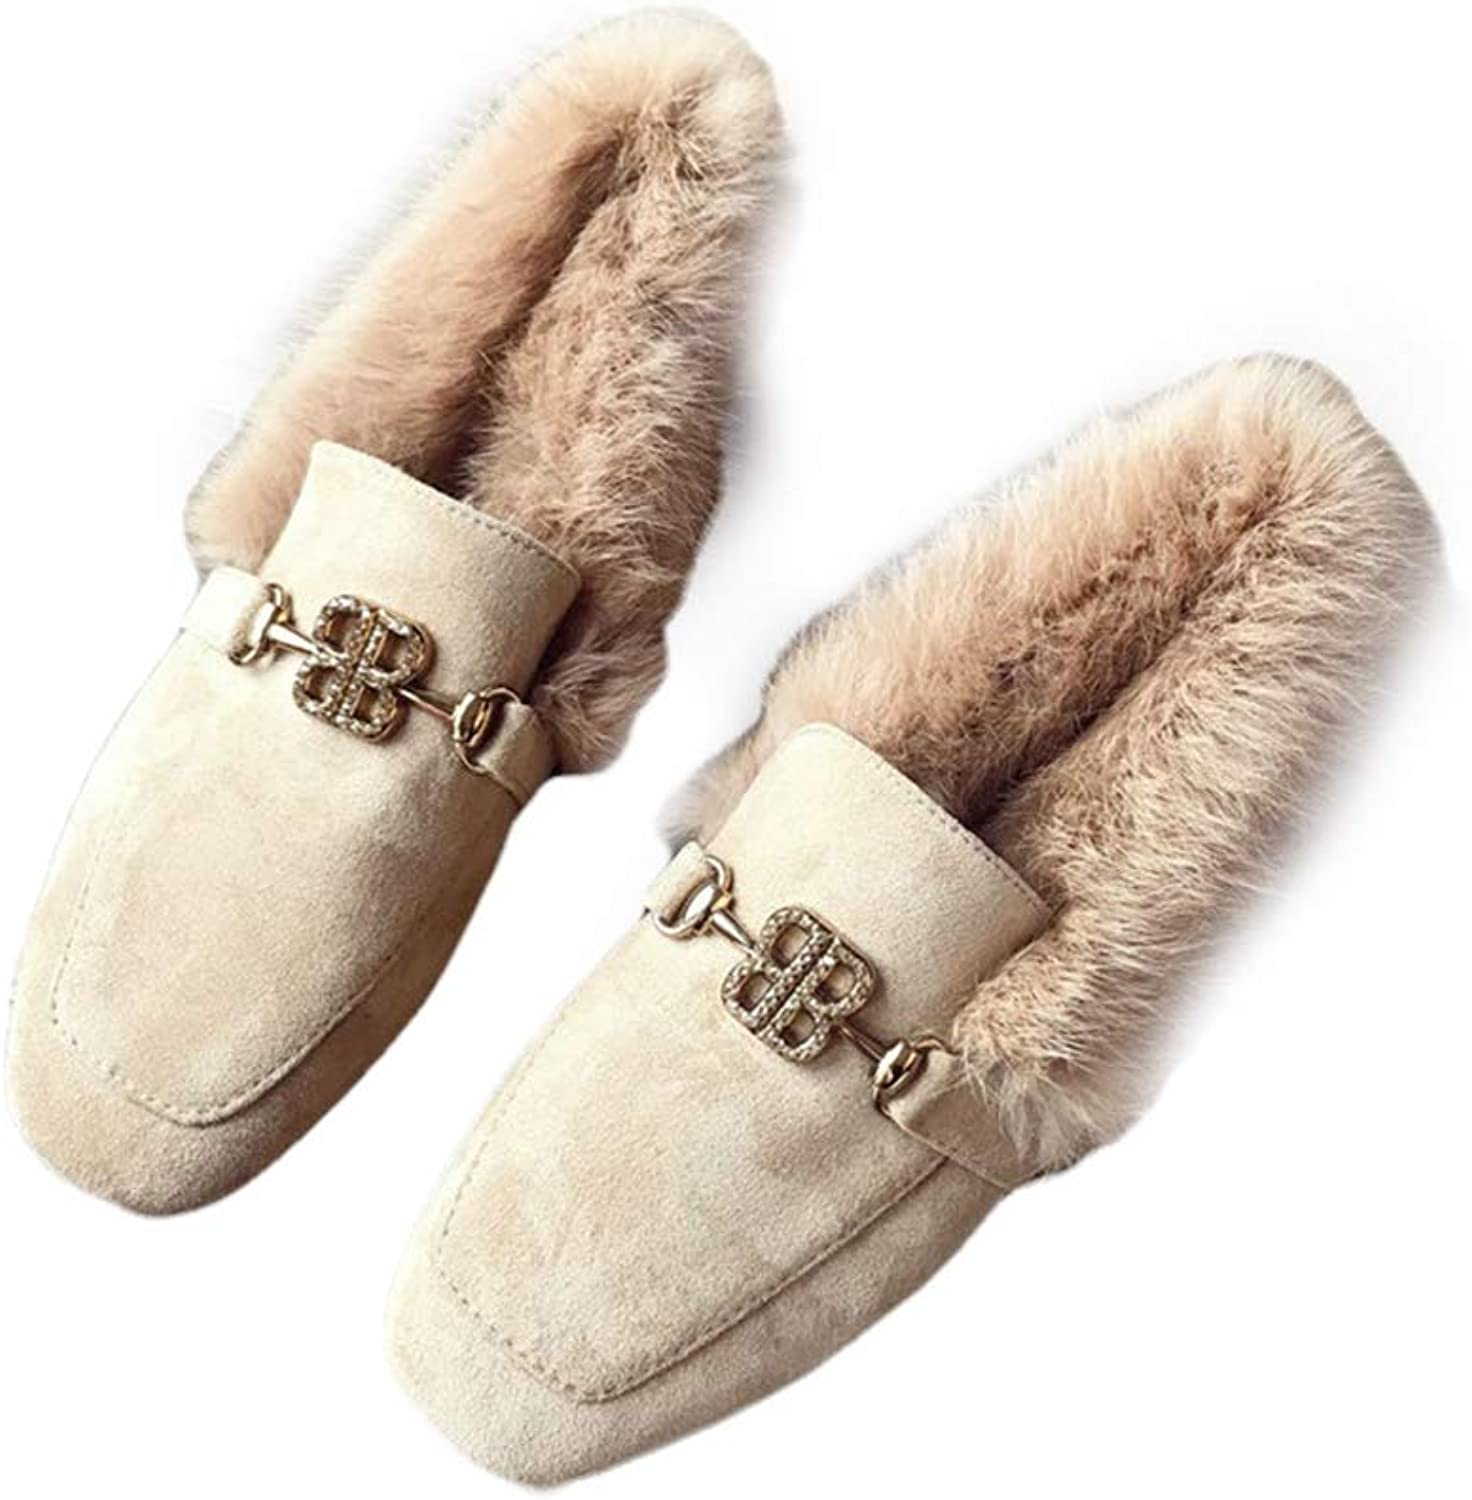 August Jim Flats shoes for Women Winter,Slip-on Winter Fur Flats Fuzzy Moccasin Loafers